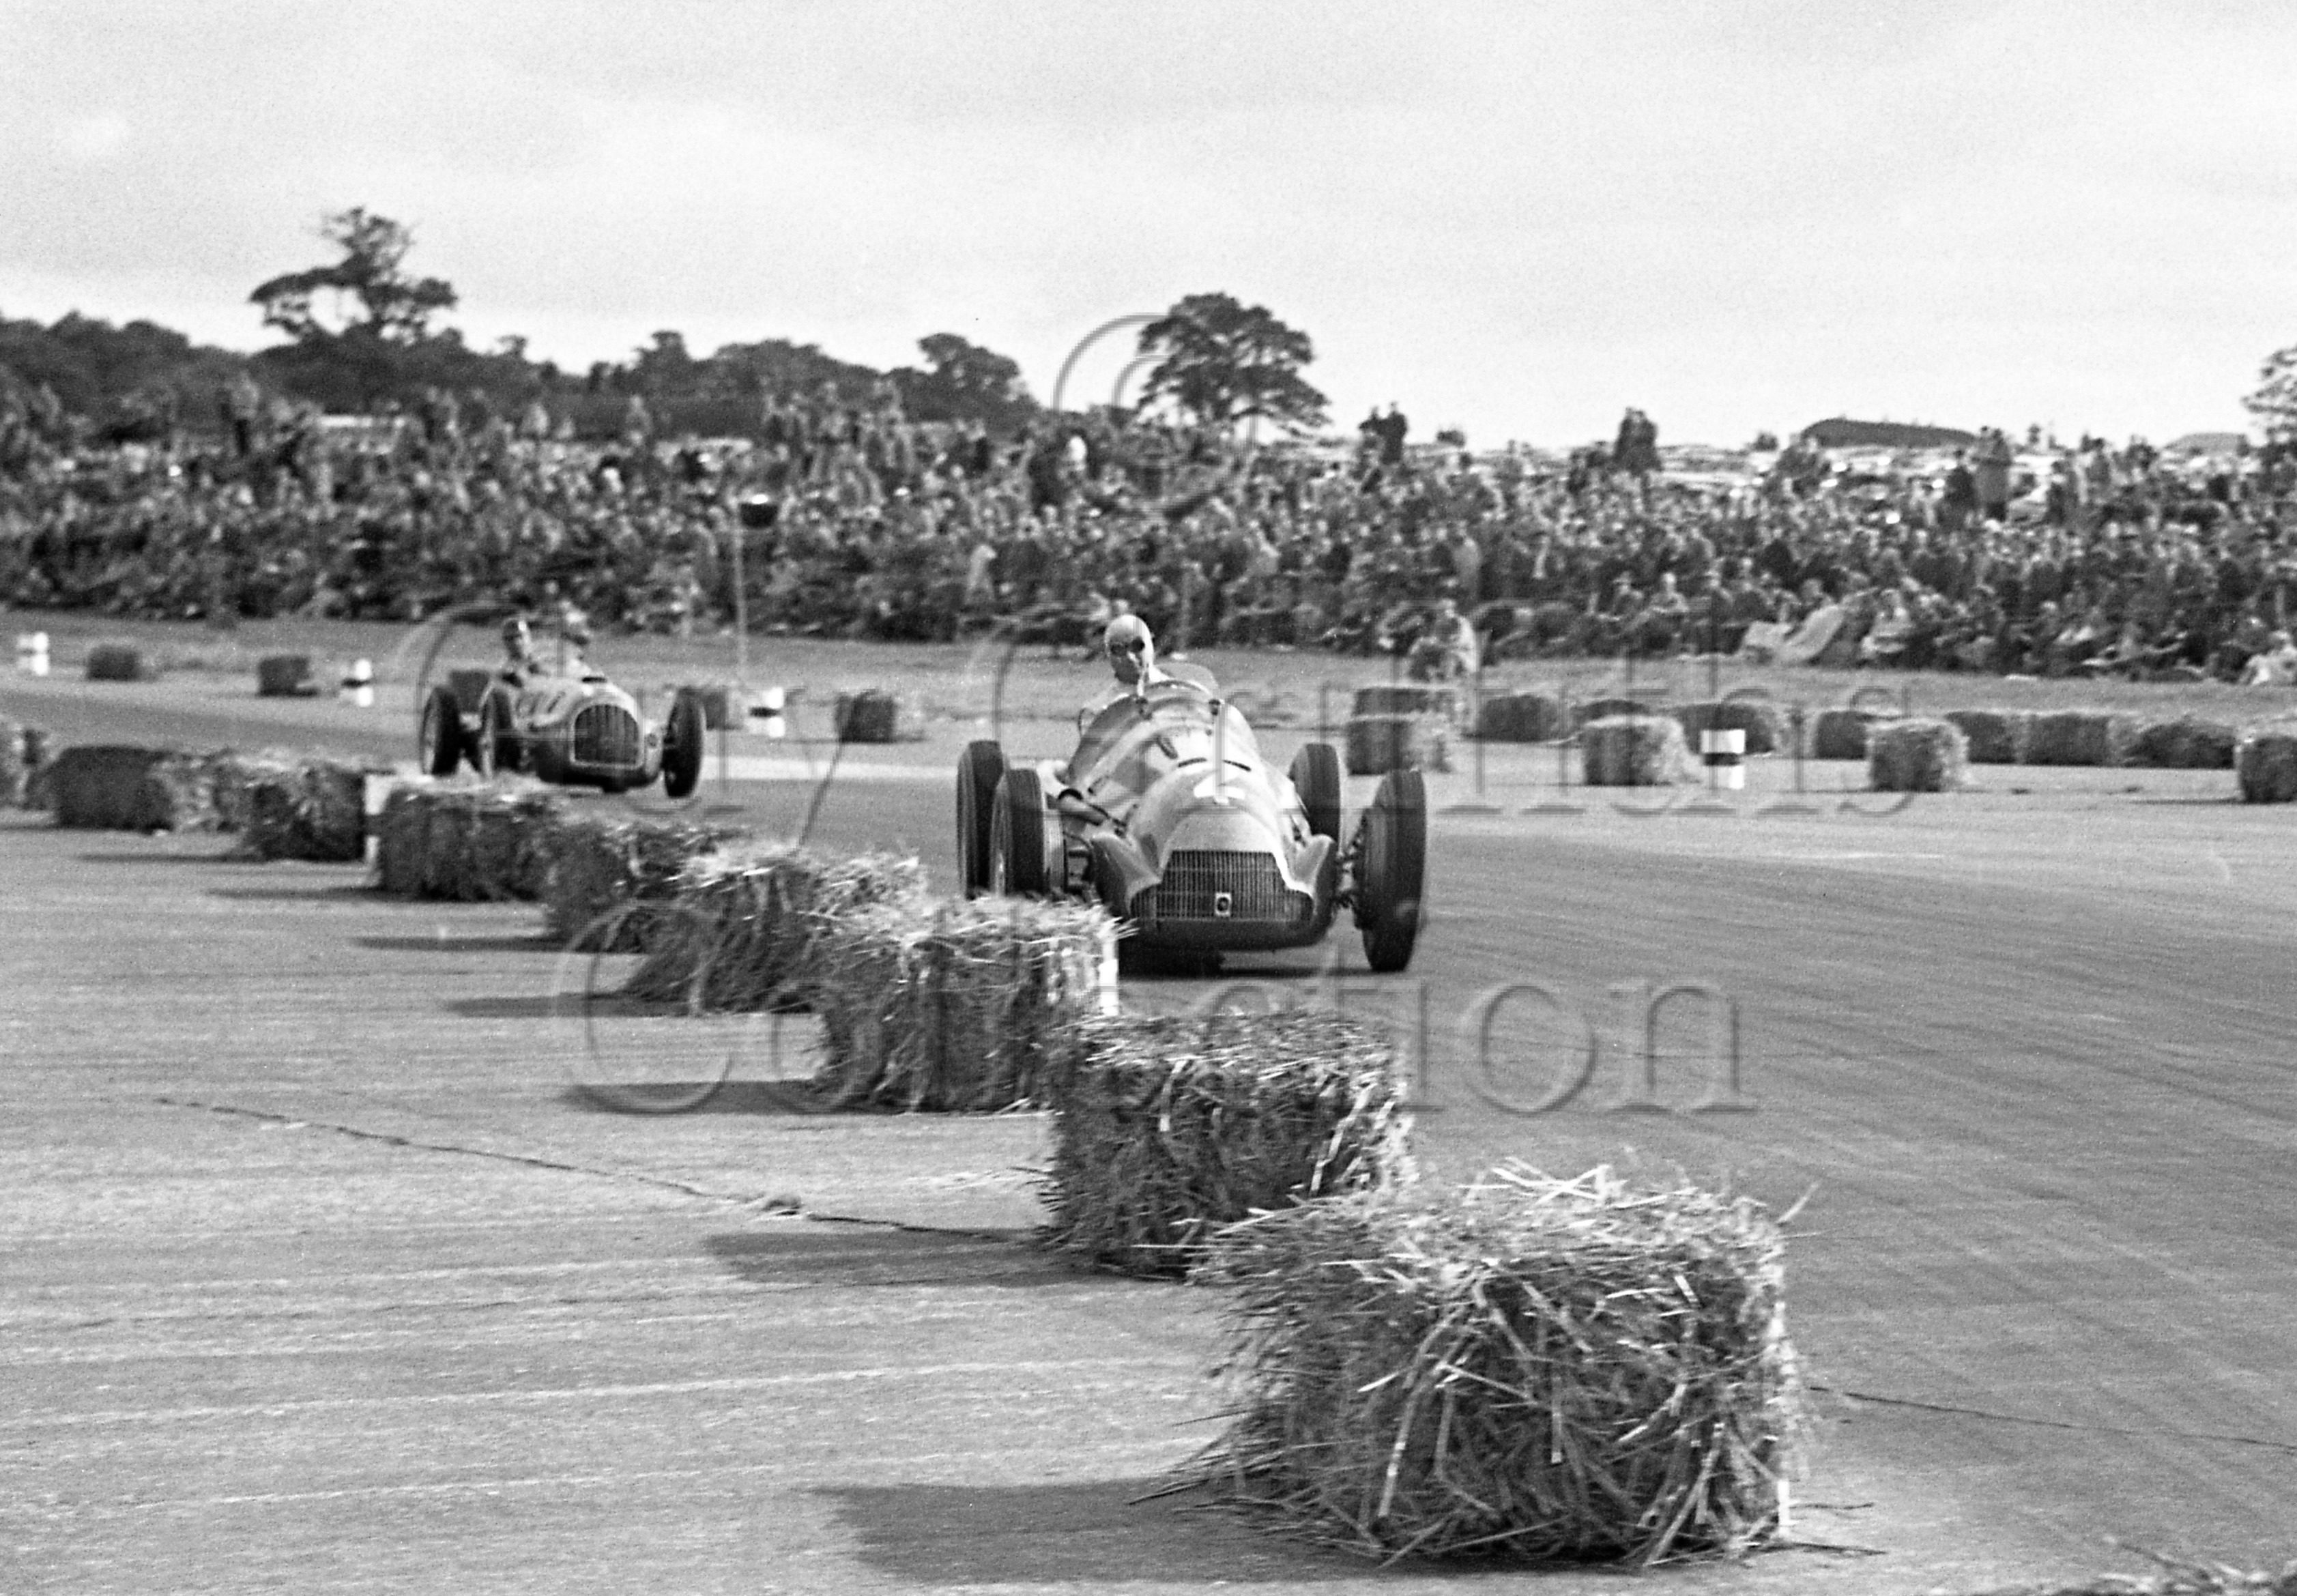 36-131–J-Fangio–Alfa-Romeo-158–Silverstone–26-08-1950.jpg - The Guy Griffiths Collection